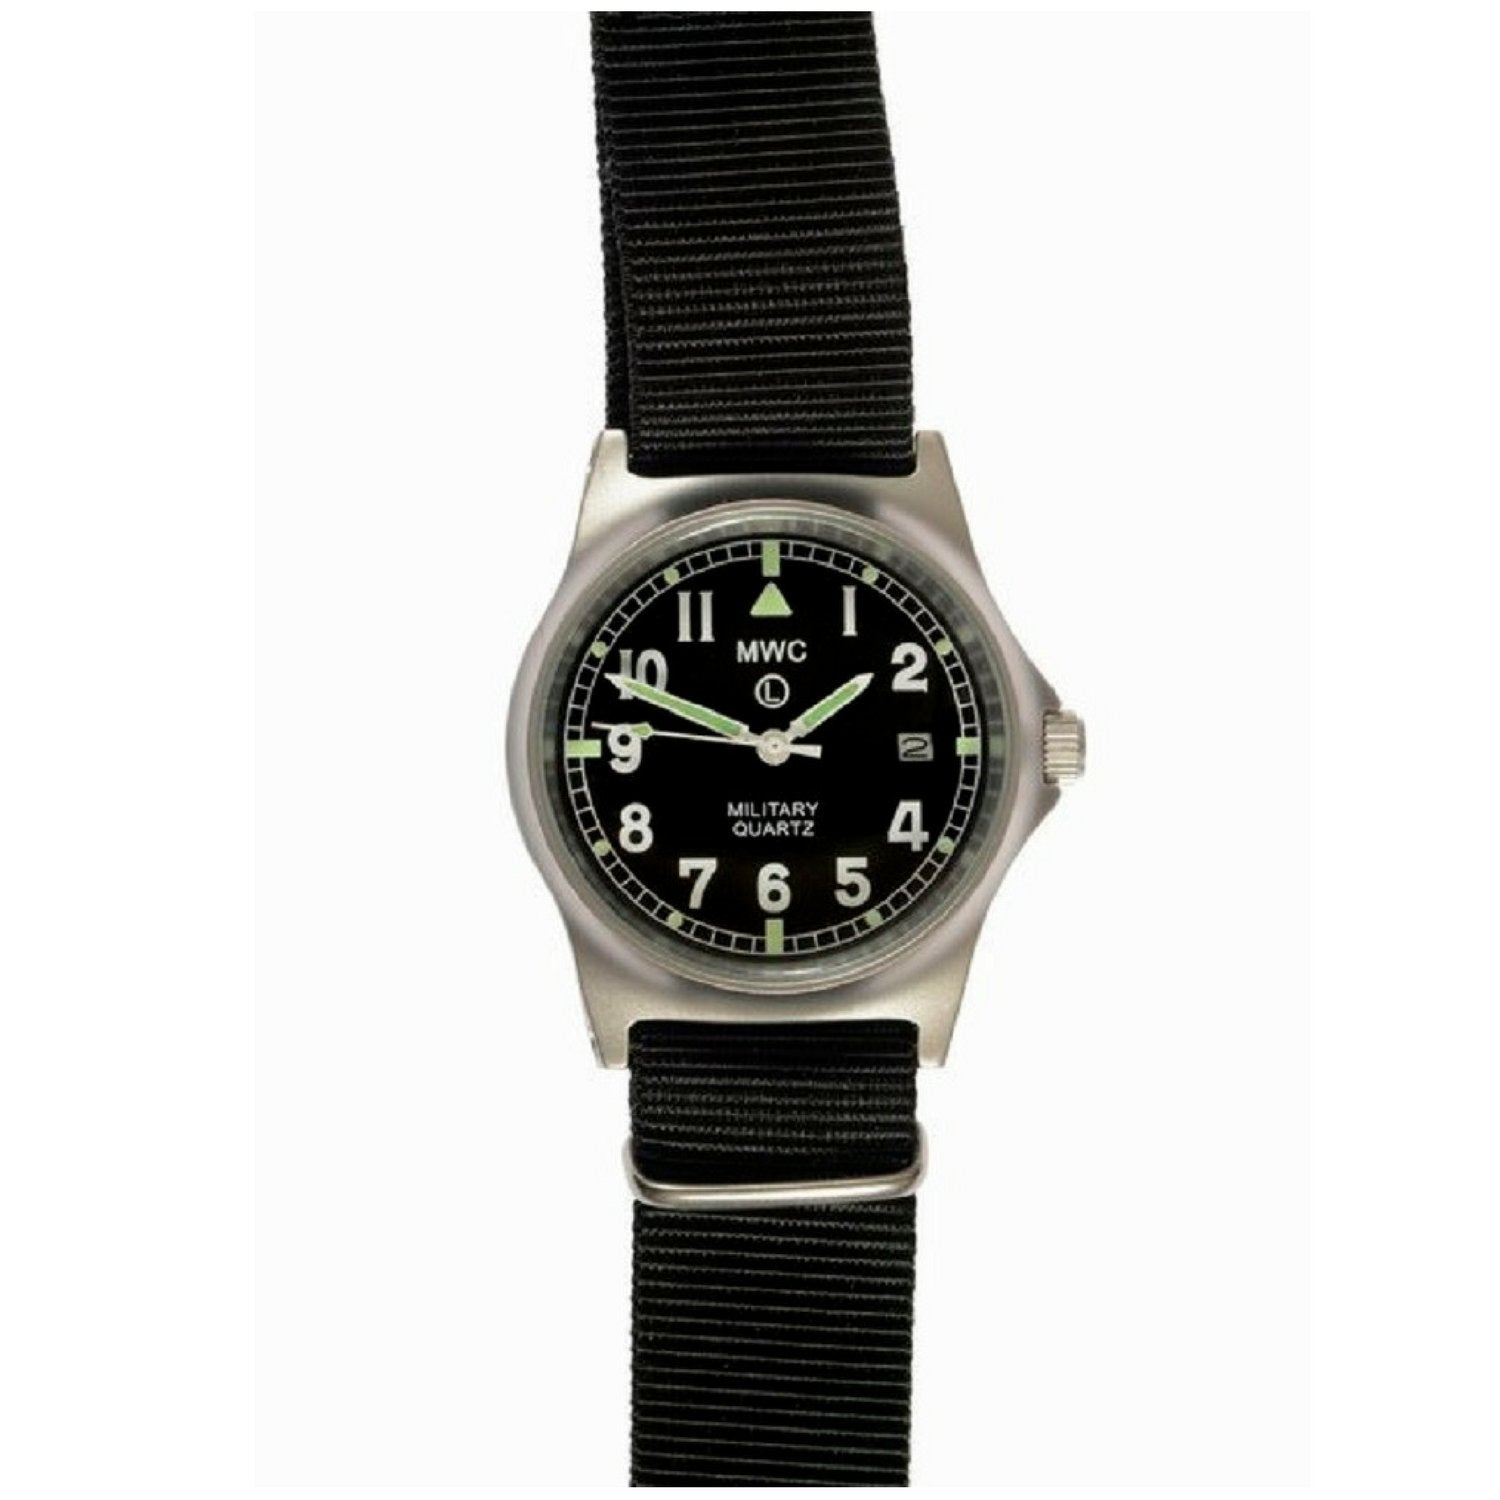 MWC G10 LM Military Watch (Black Strap)